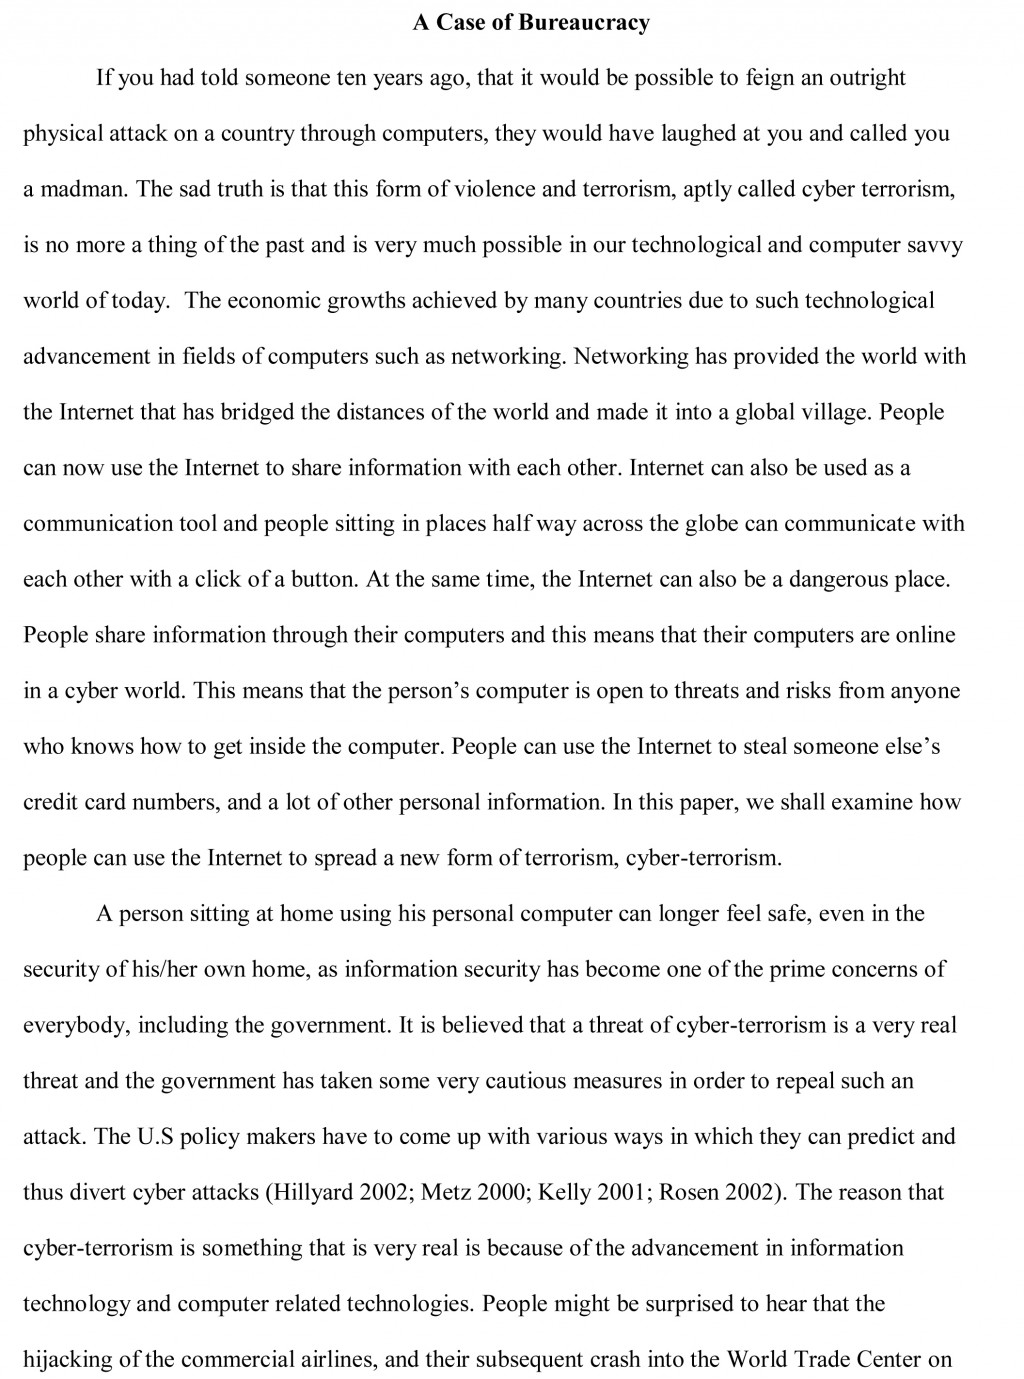 013 Essay Example Writer Free Writing Gse Bookbinder Co Pertaining Amazing Trial Unblocked Software Large